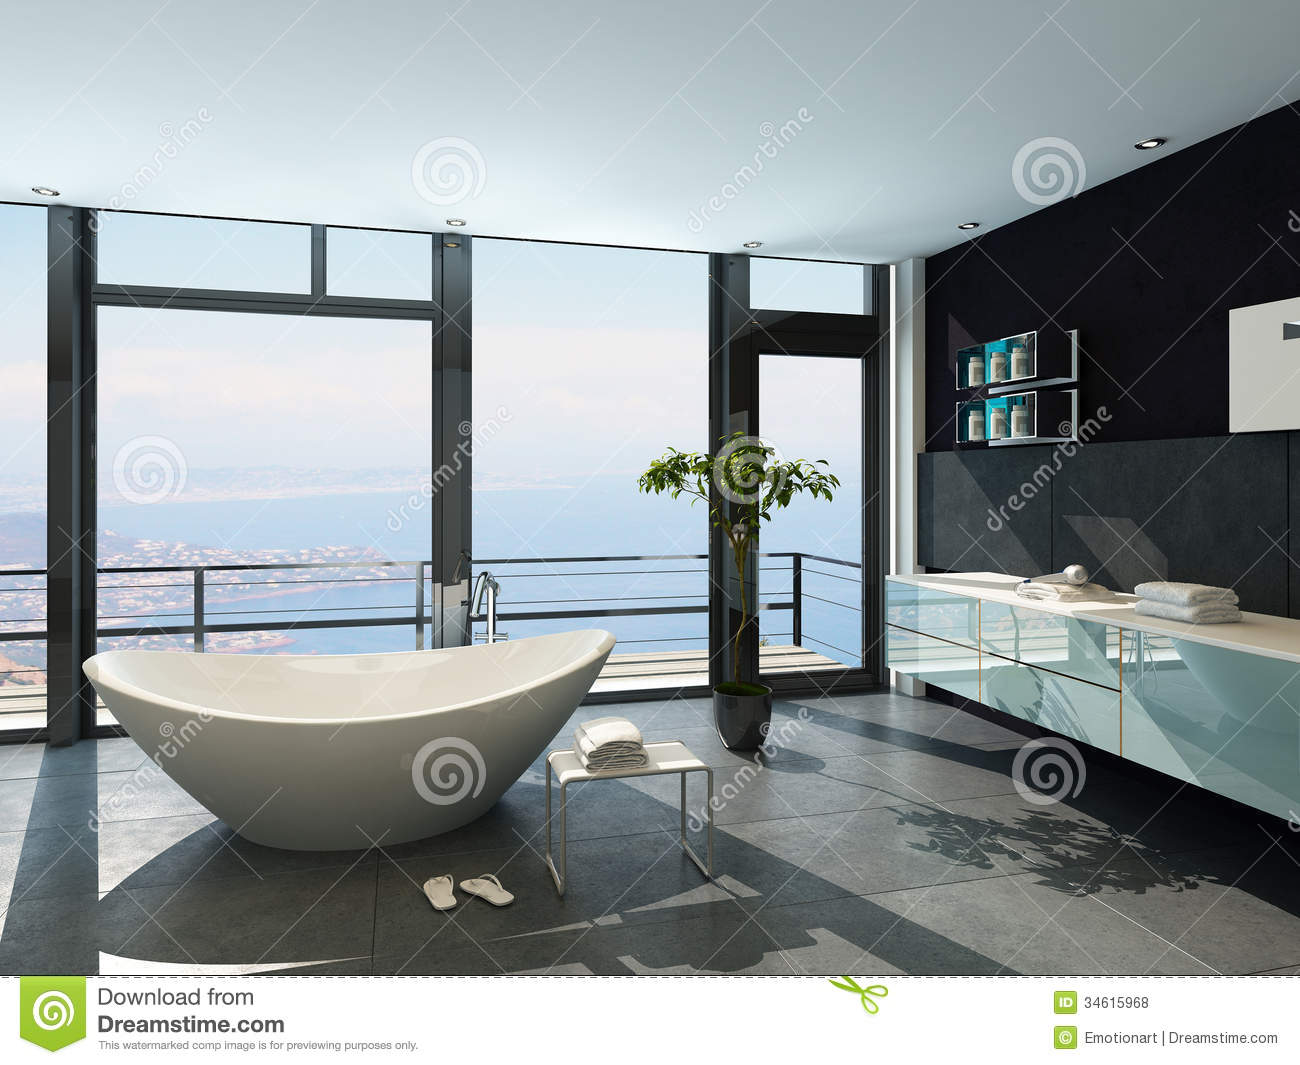 Ultramodern Contemporary Design Bathroom Interior With Sea View